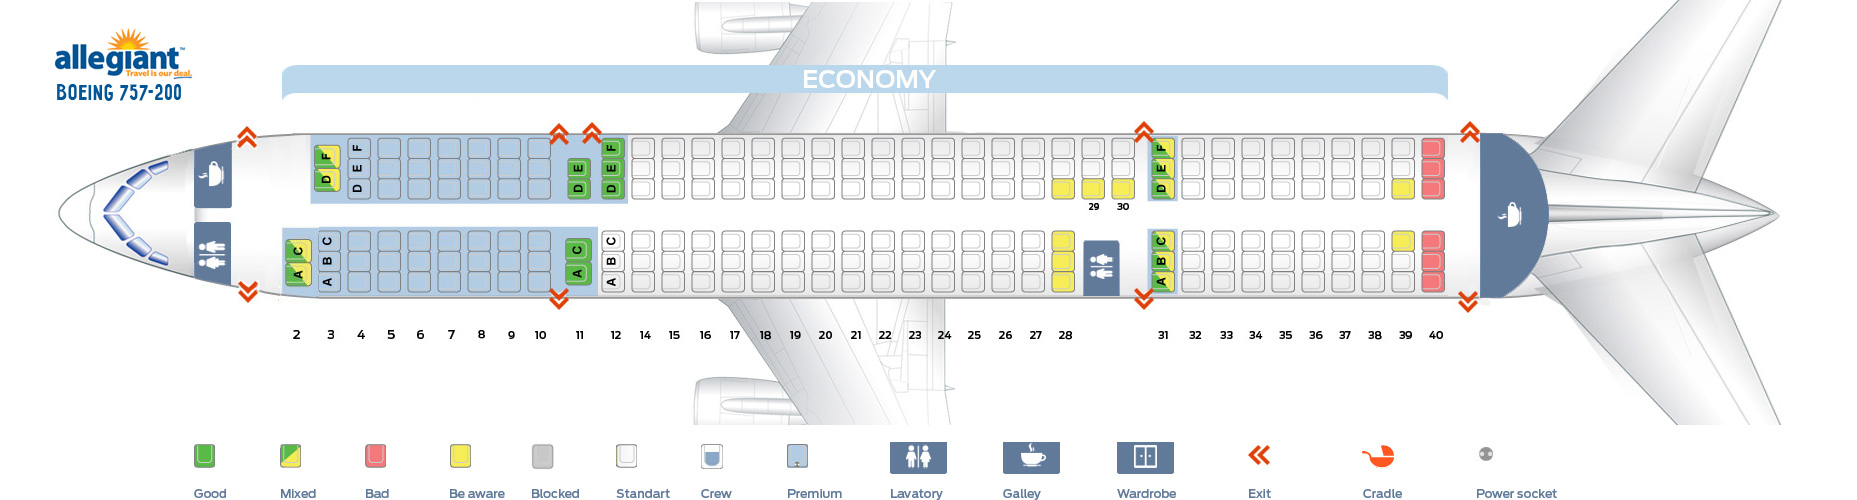 Allegiant Airplane Seating Chart Elcho Table